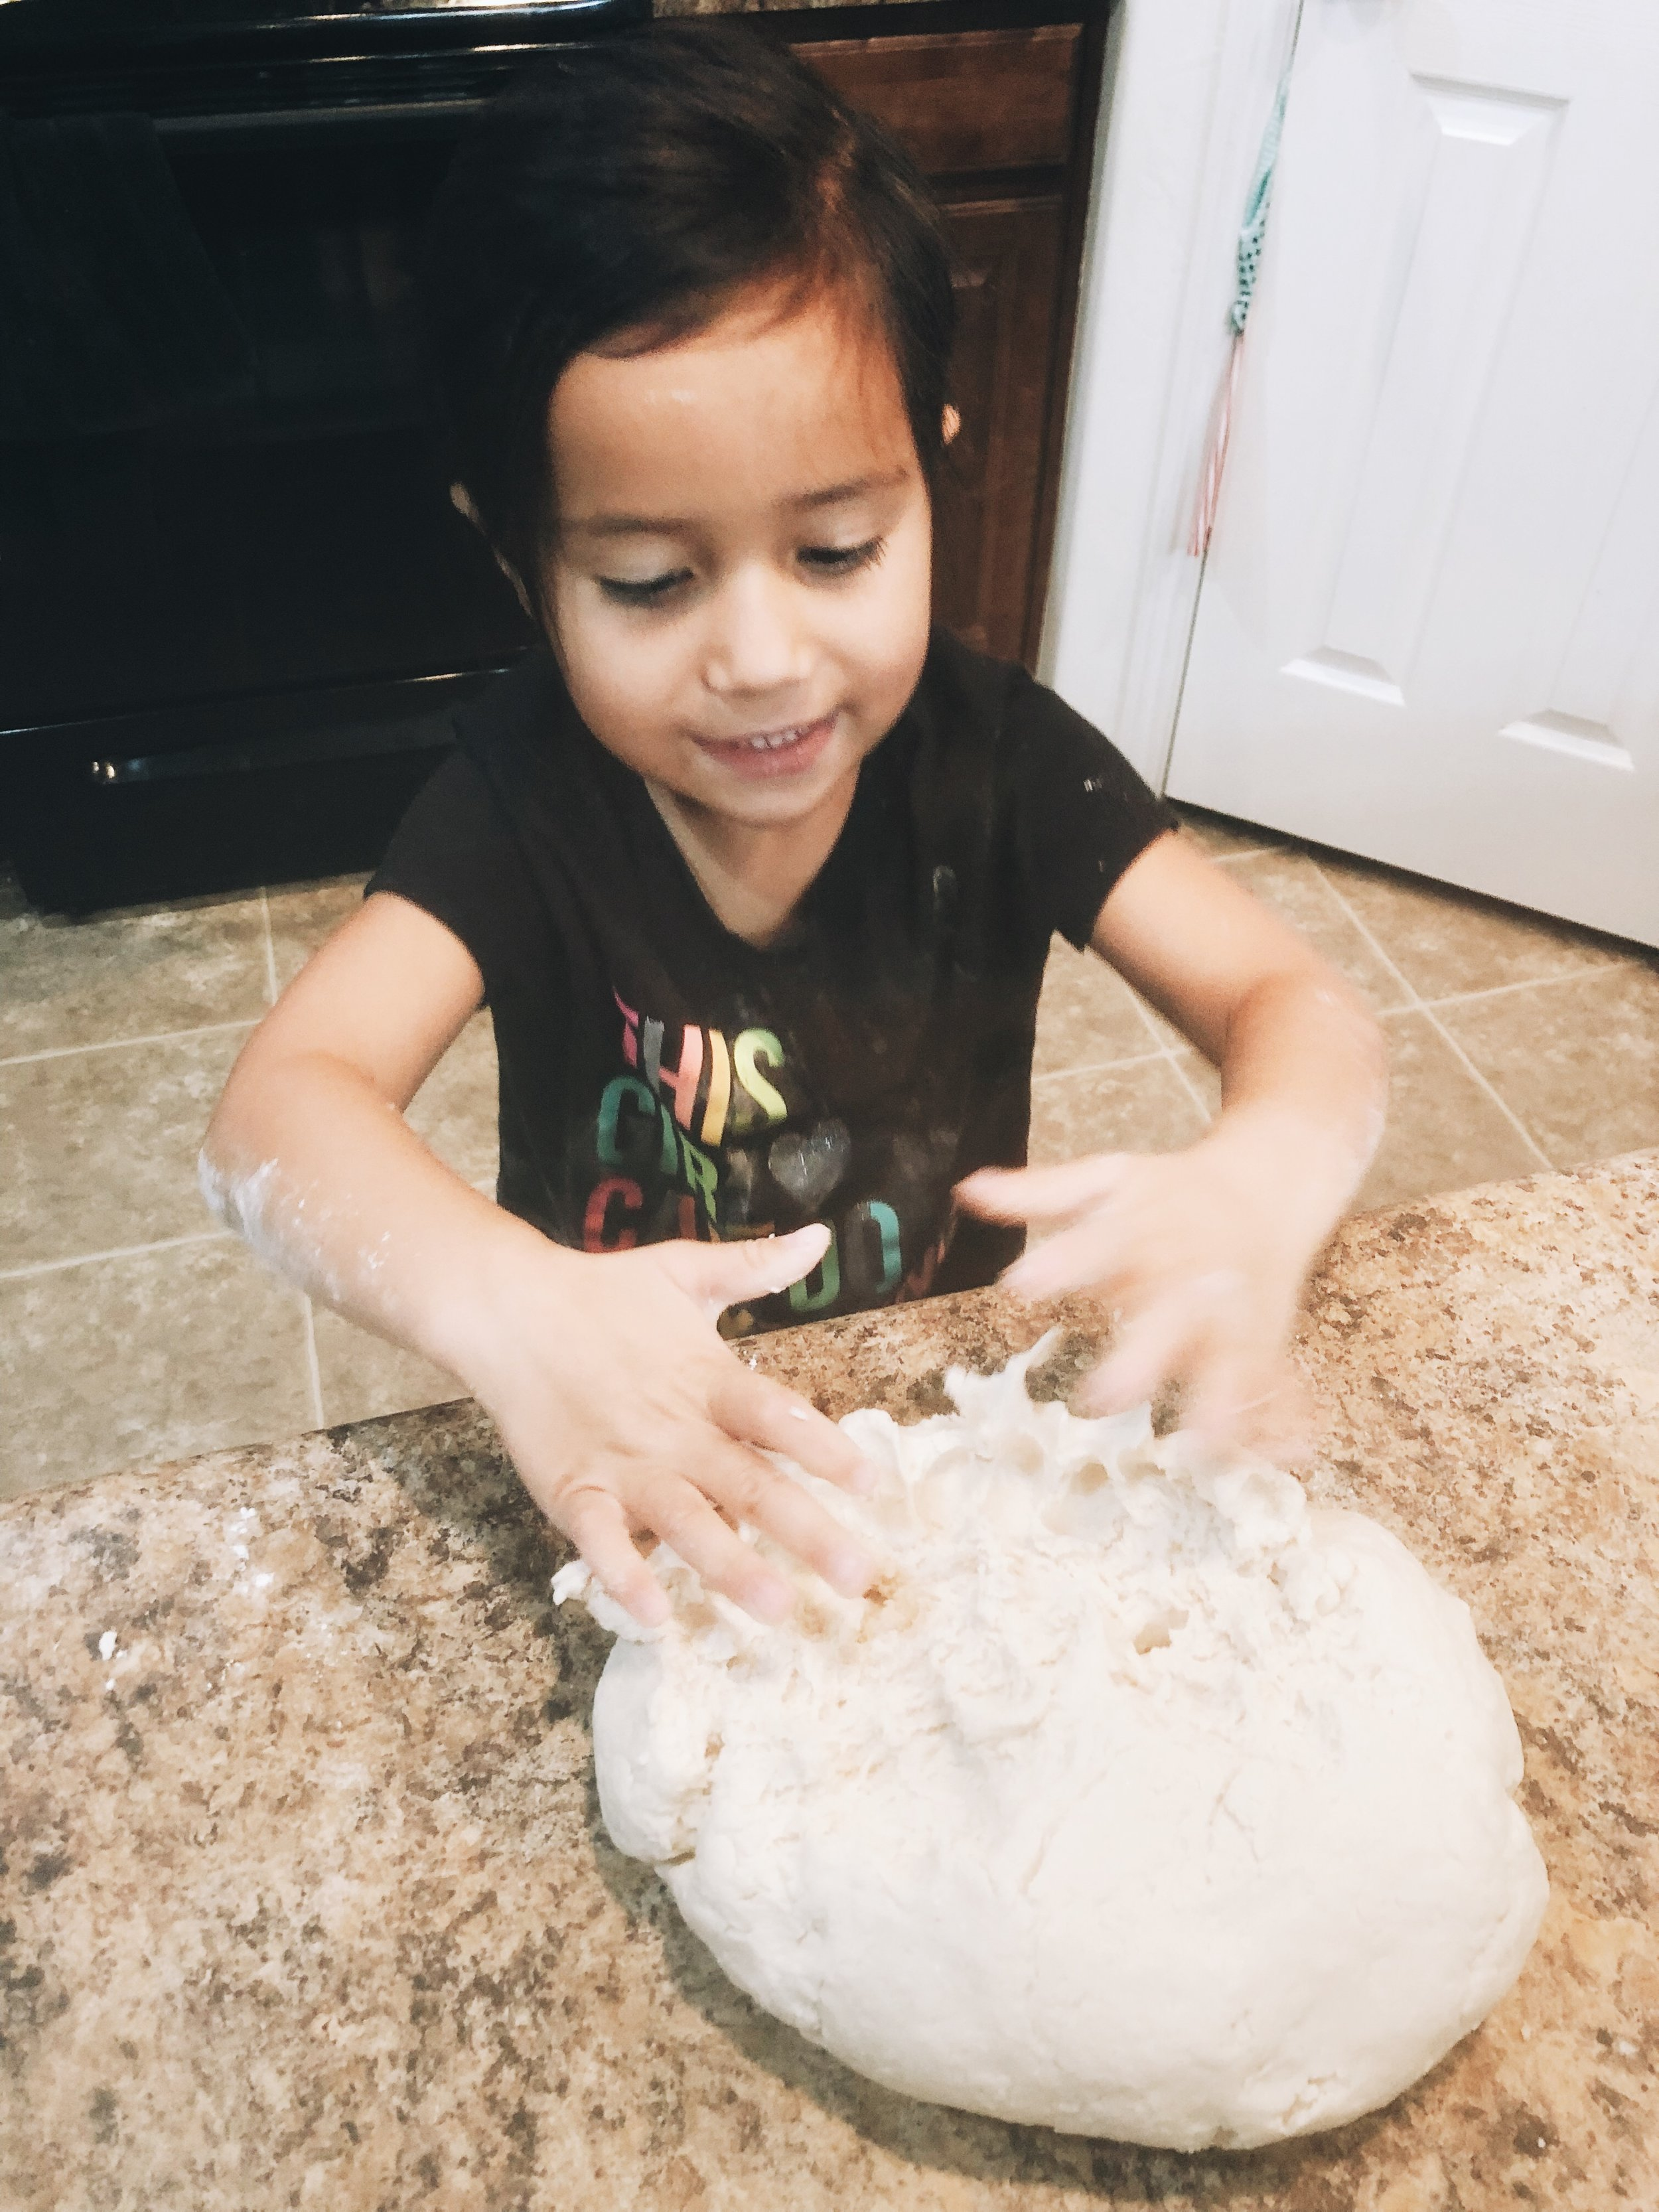 She loved helping me knead the dough!